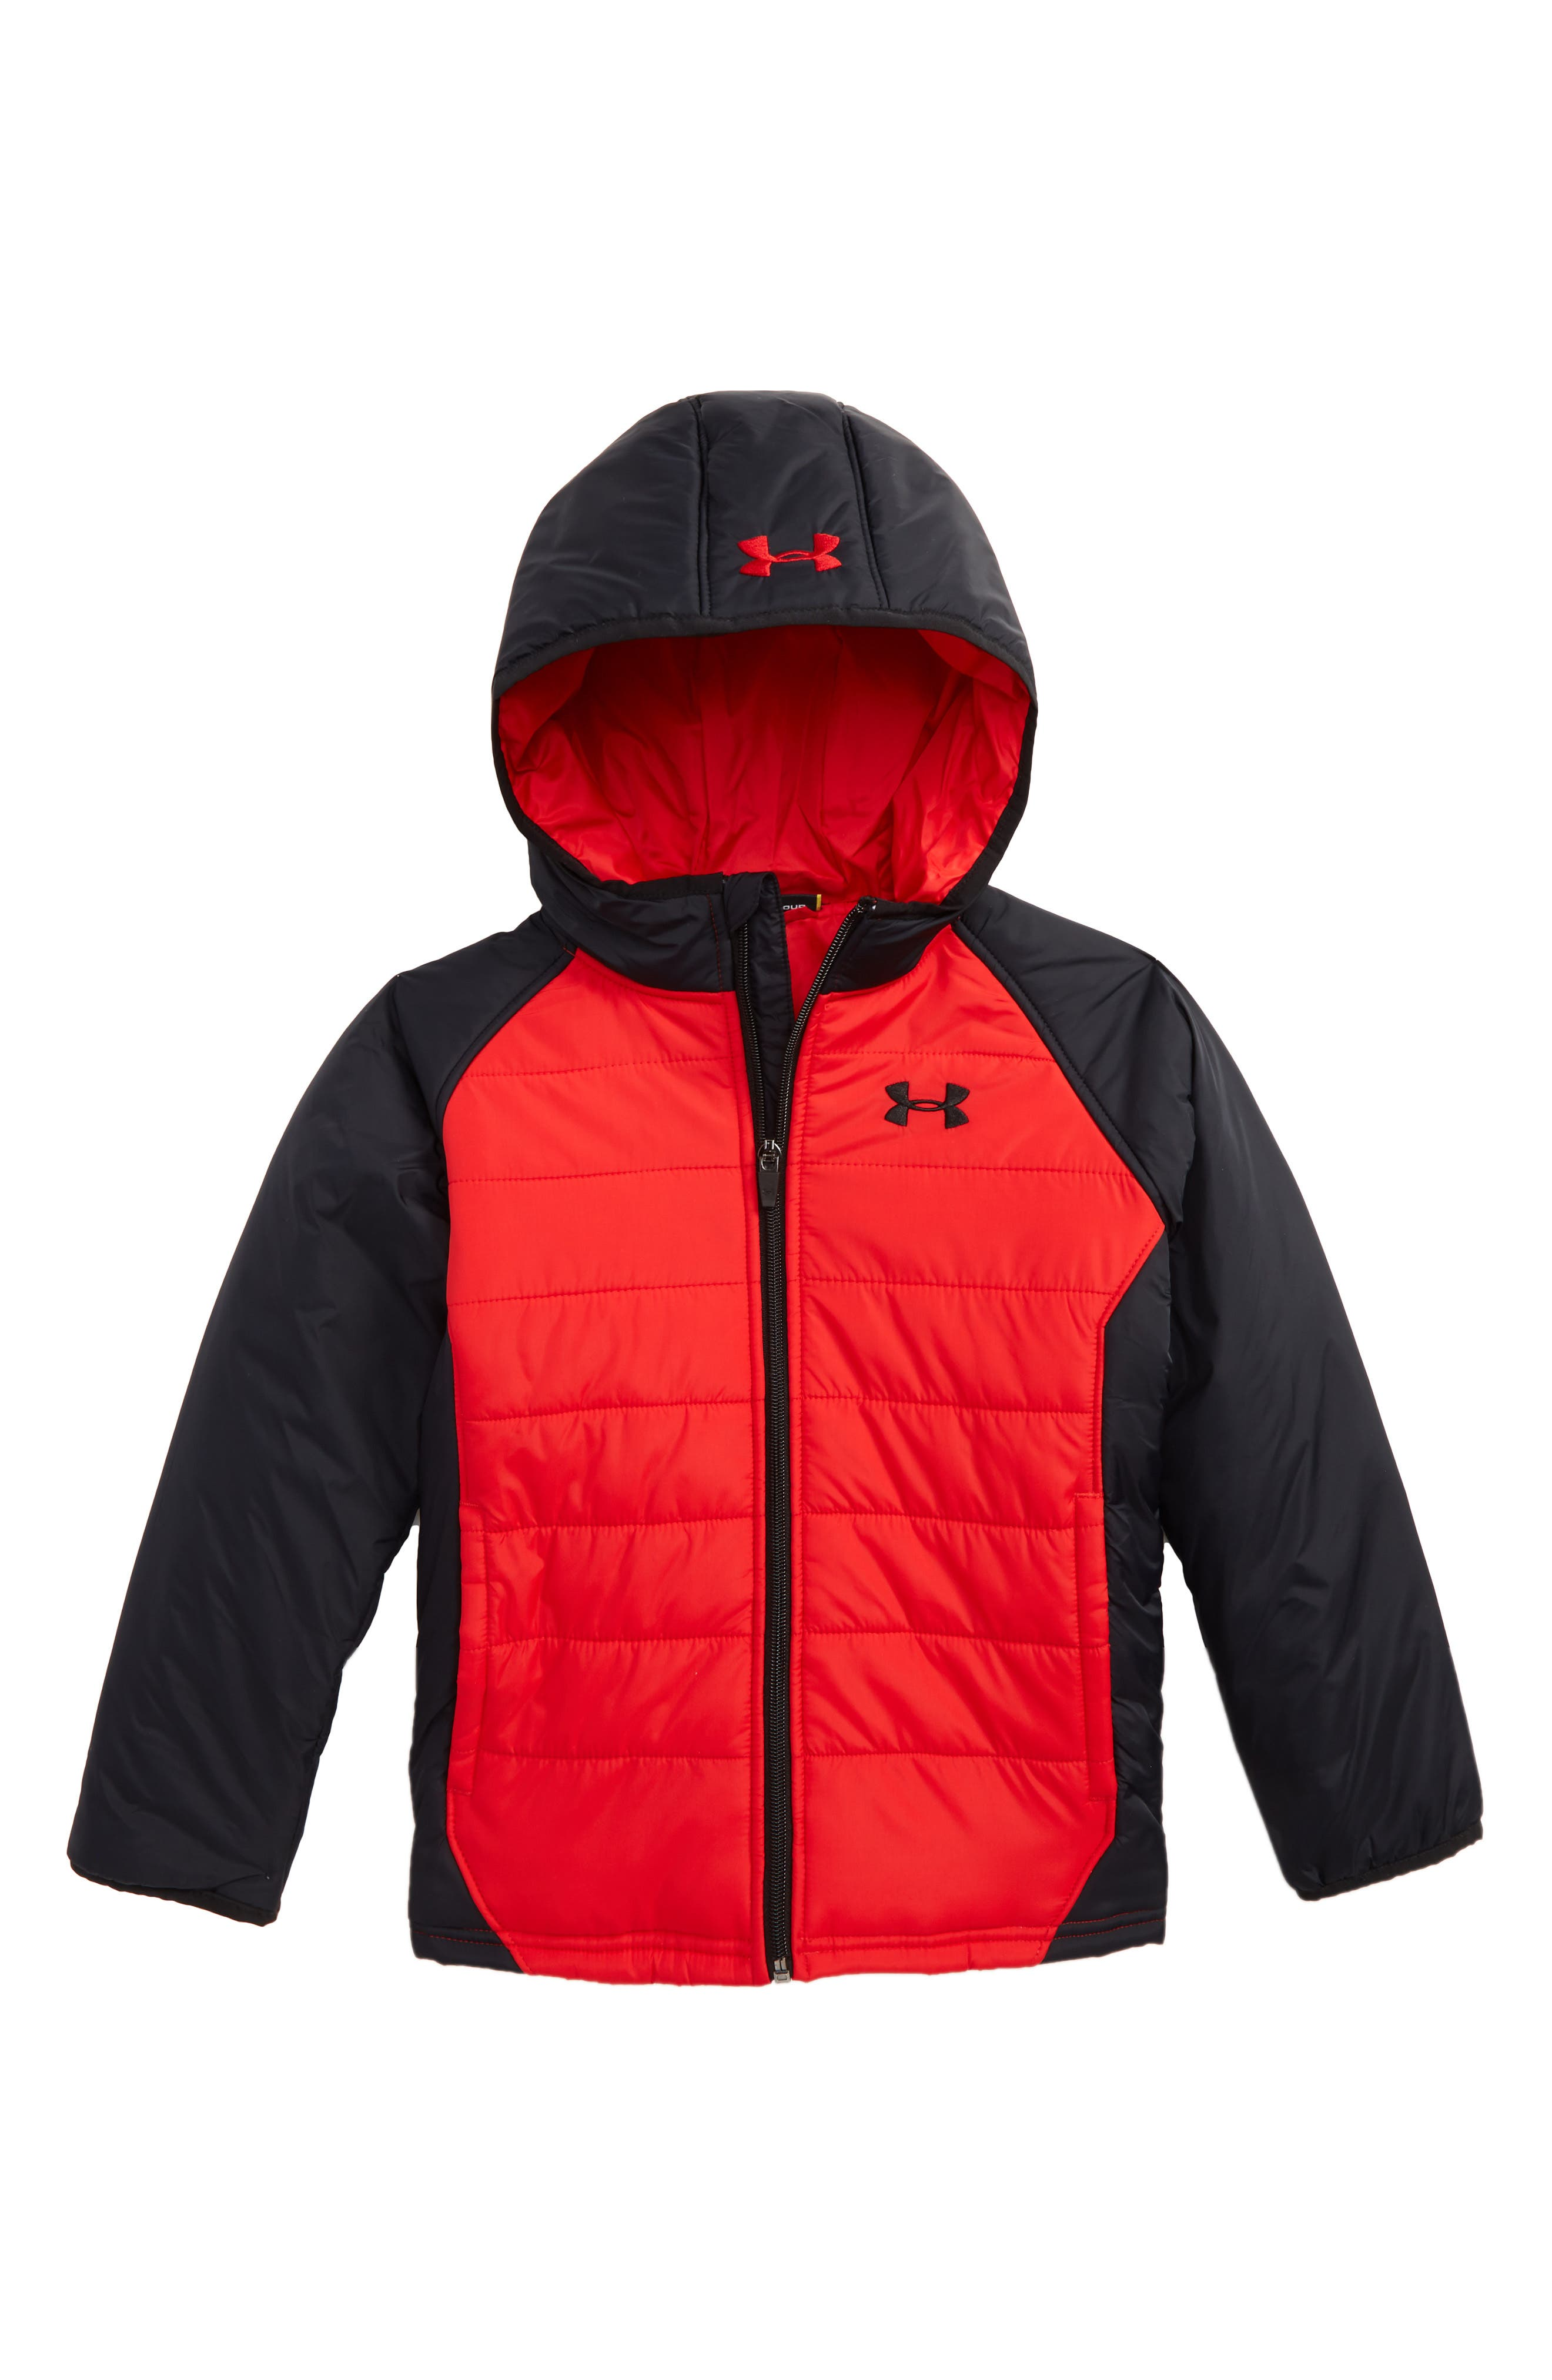 Main Image - Under Armour Werewolf Water Resistant ColdGear® Hooded Puffer Jacket (Toddler Boys & Little Boys)